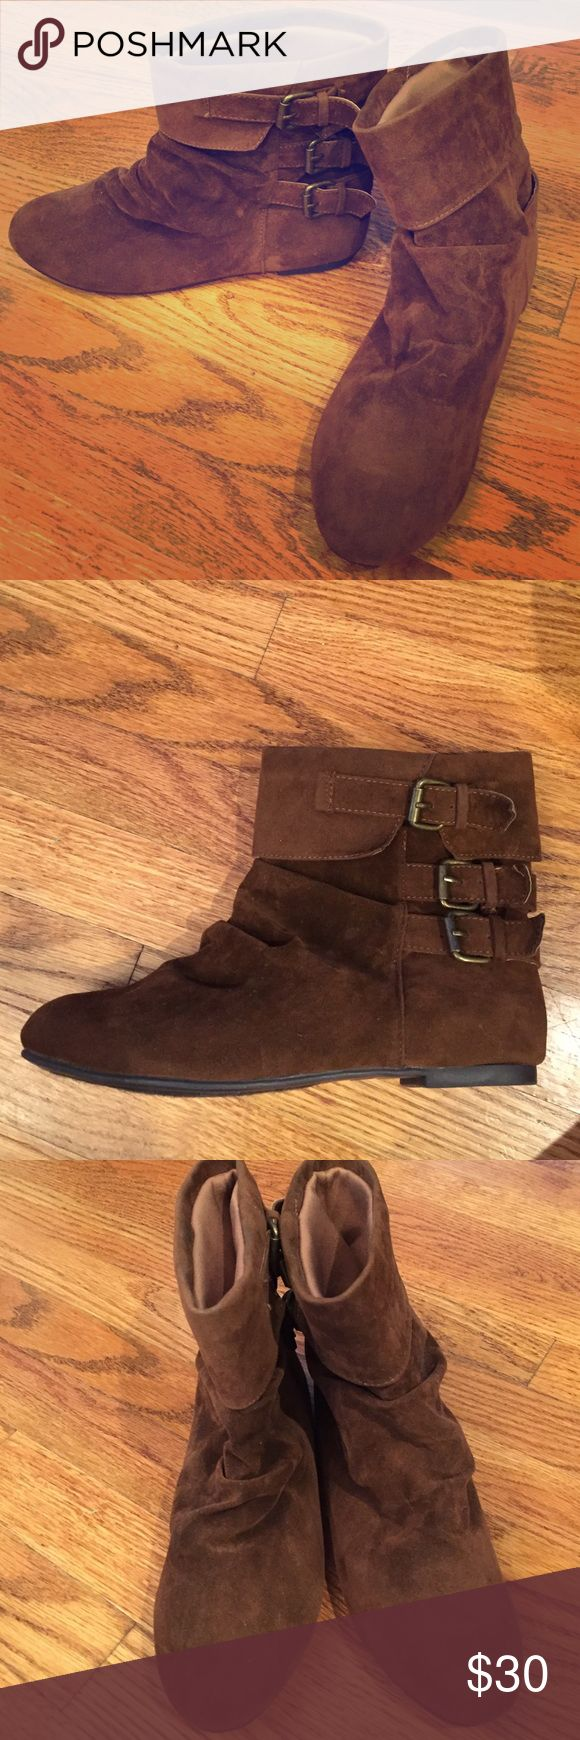 Diba London brown suede ankle boot, size 8.5 Diba London brown suede ankle bootie, with three buckle detail on the side. Size 8.5, gently used. Good condition! Diba Shoes Ankle Boots & Booties